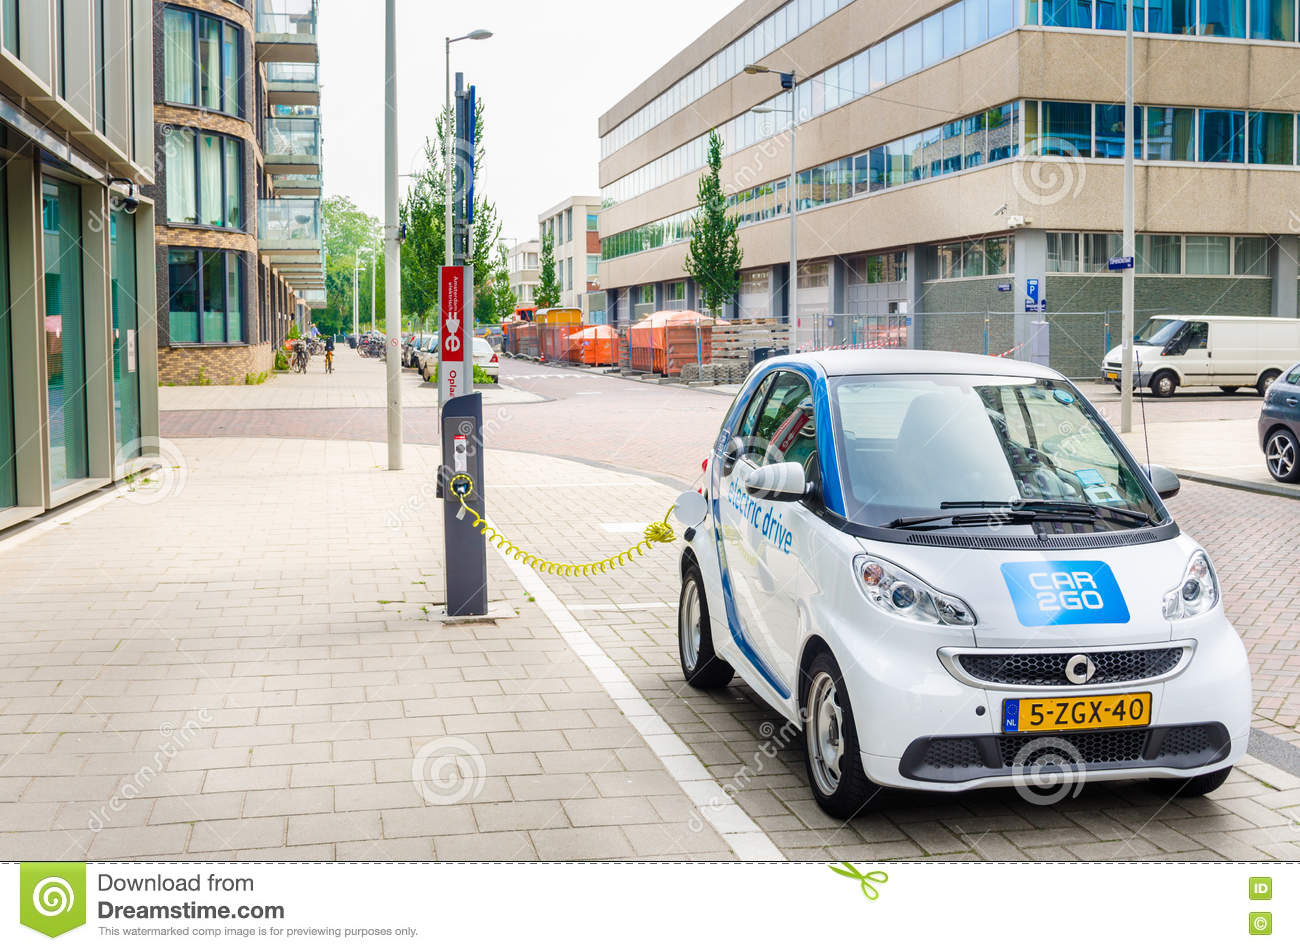 Car Sharing Services In Amsterdam